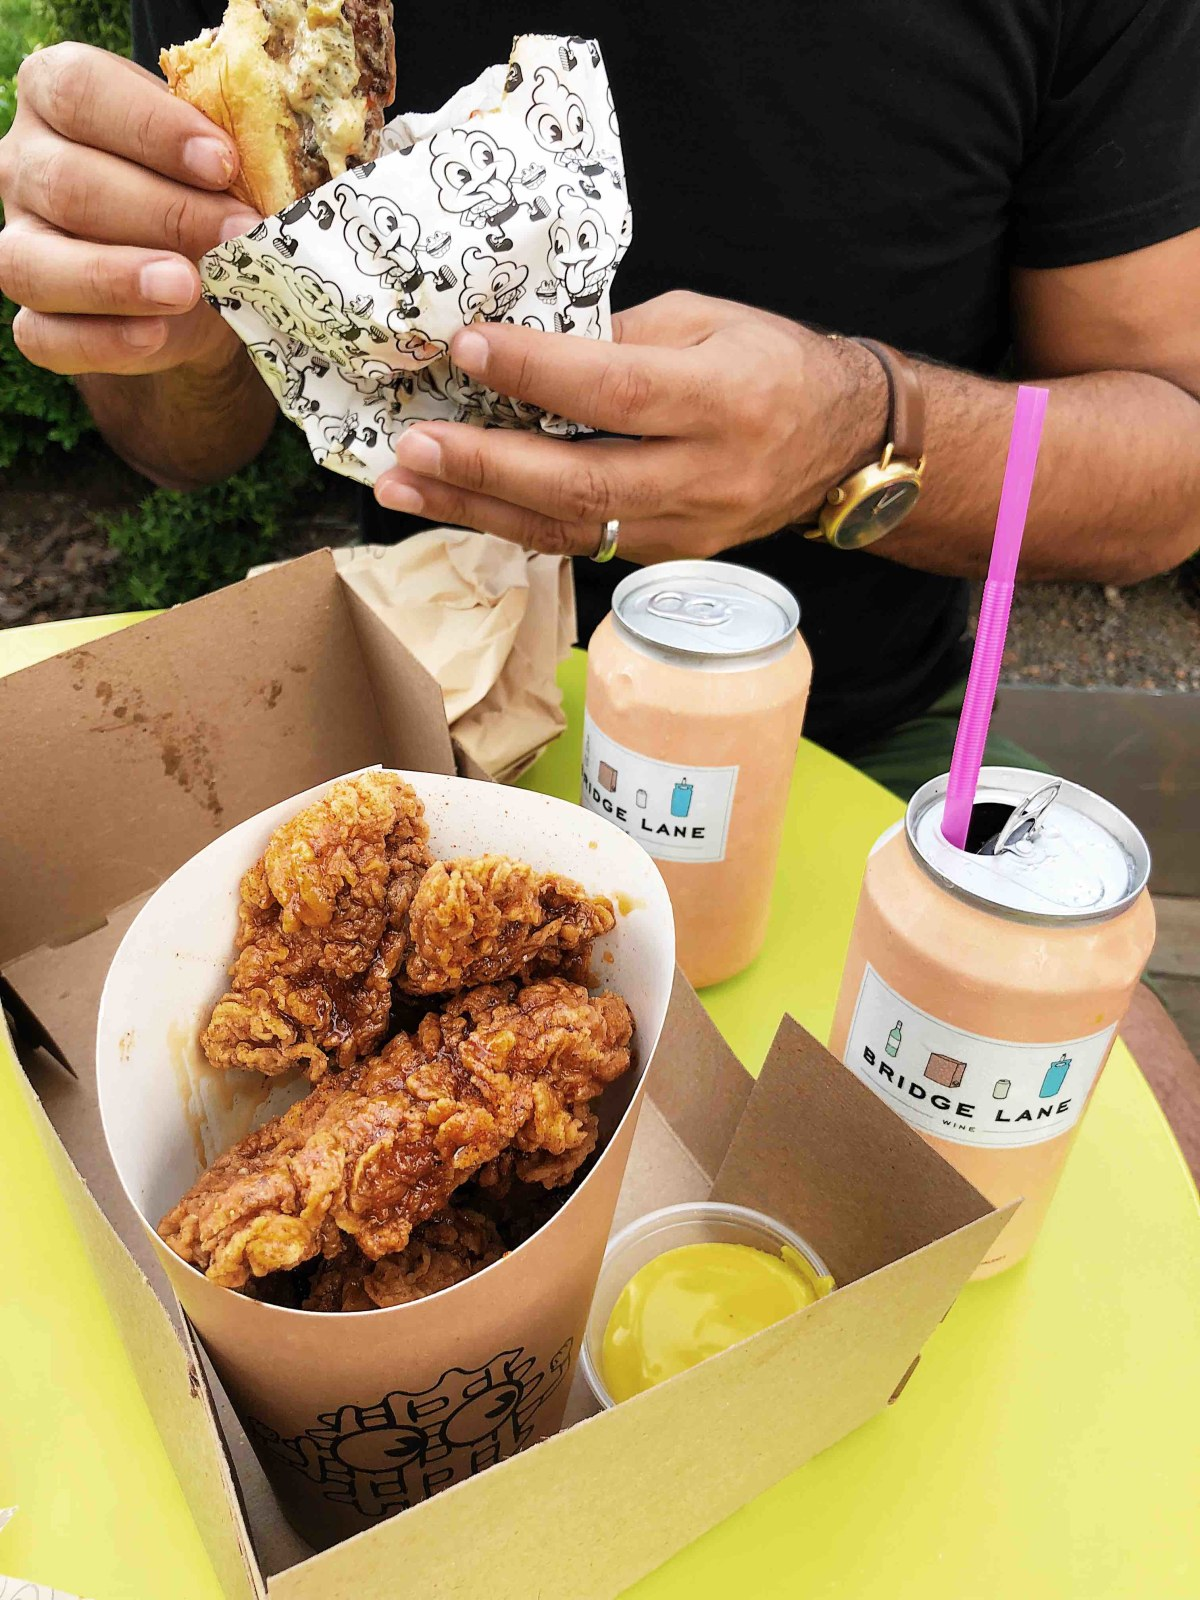 Delicious fried food and burgers